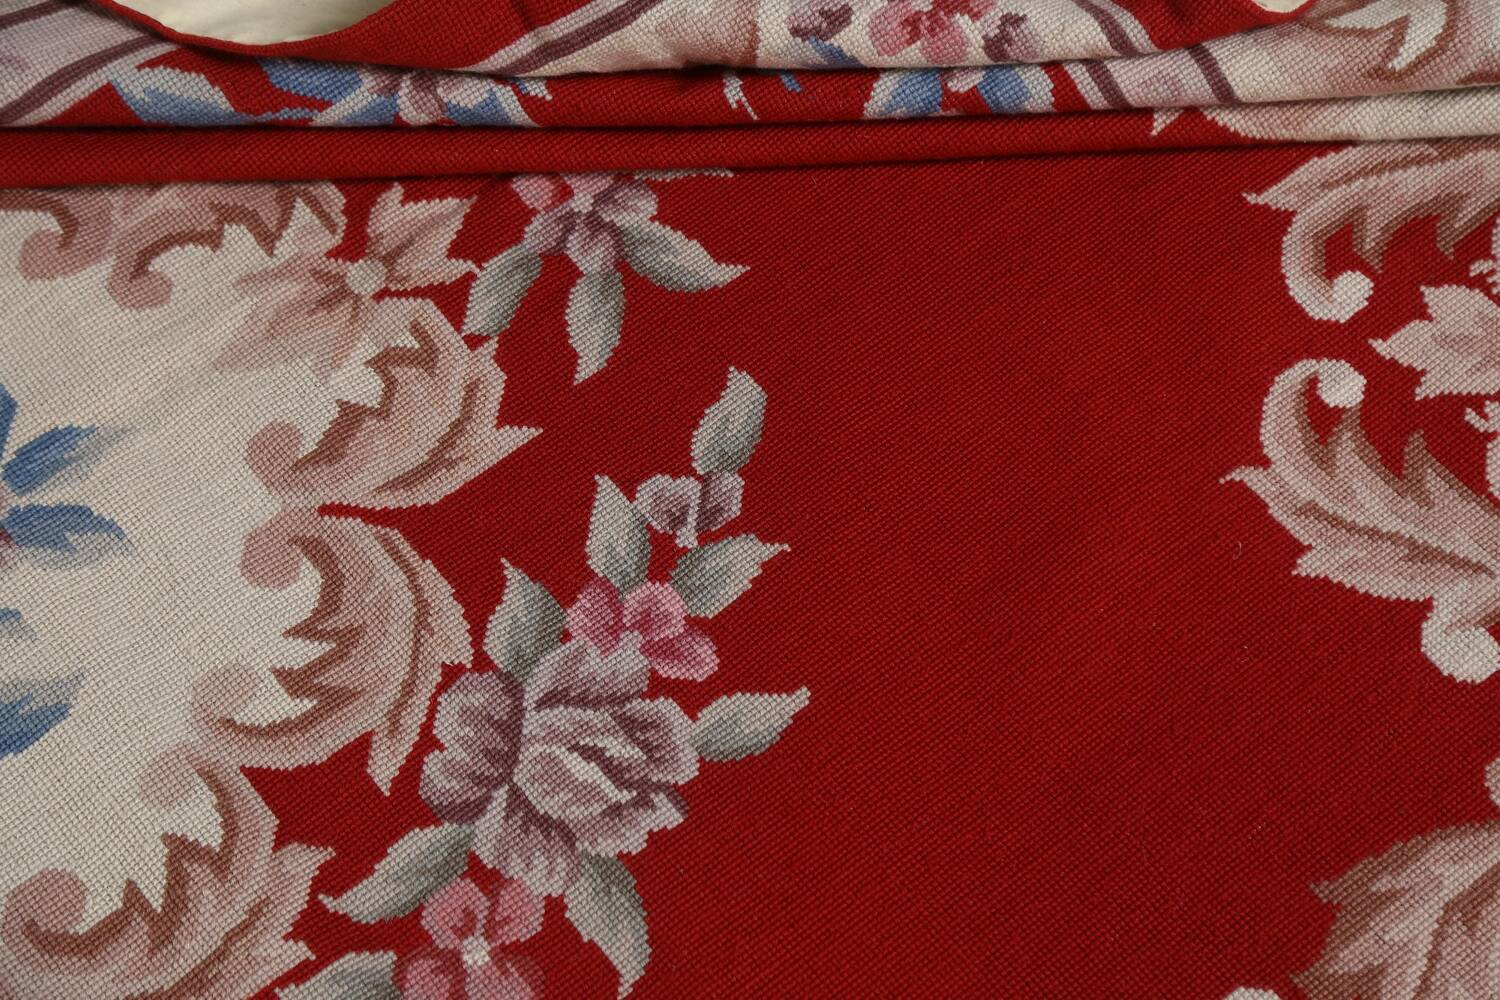 Floral Red Aubusson Chinese Wool Area Rug 5x9 image 17